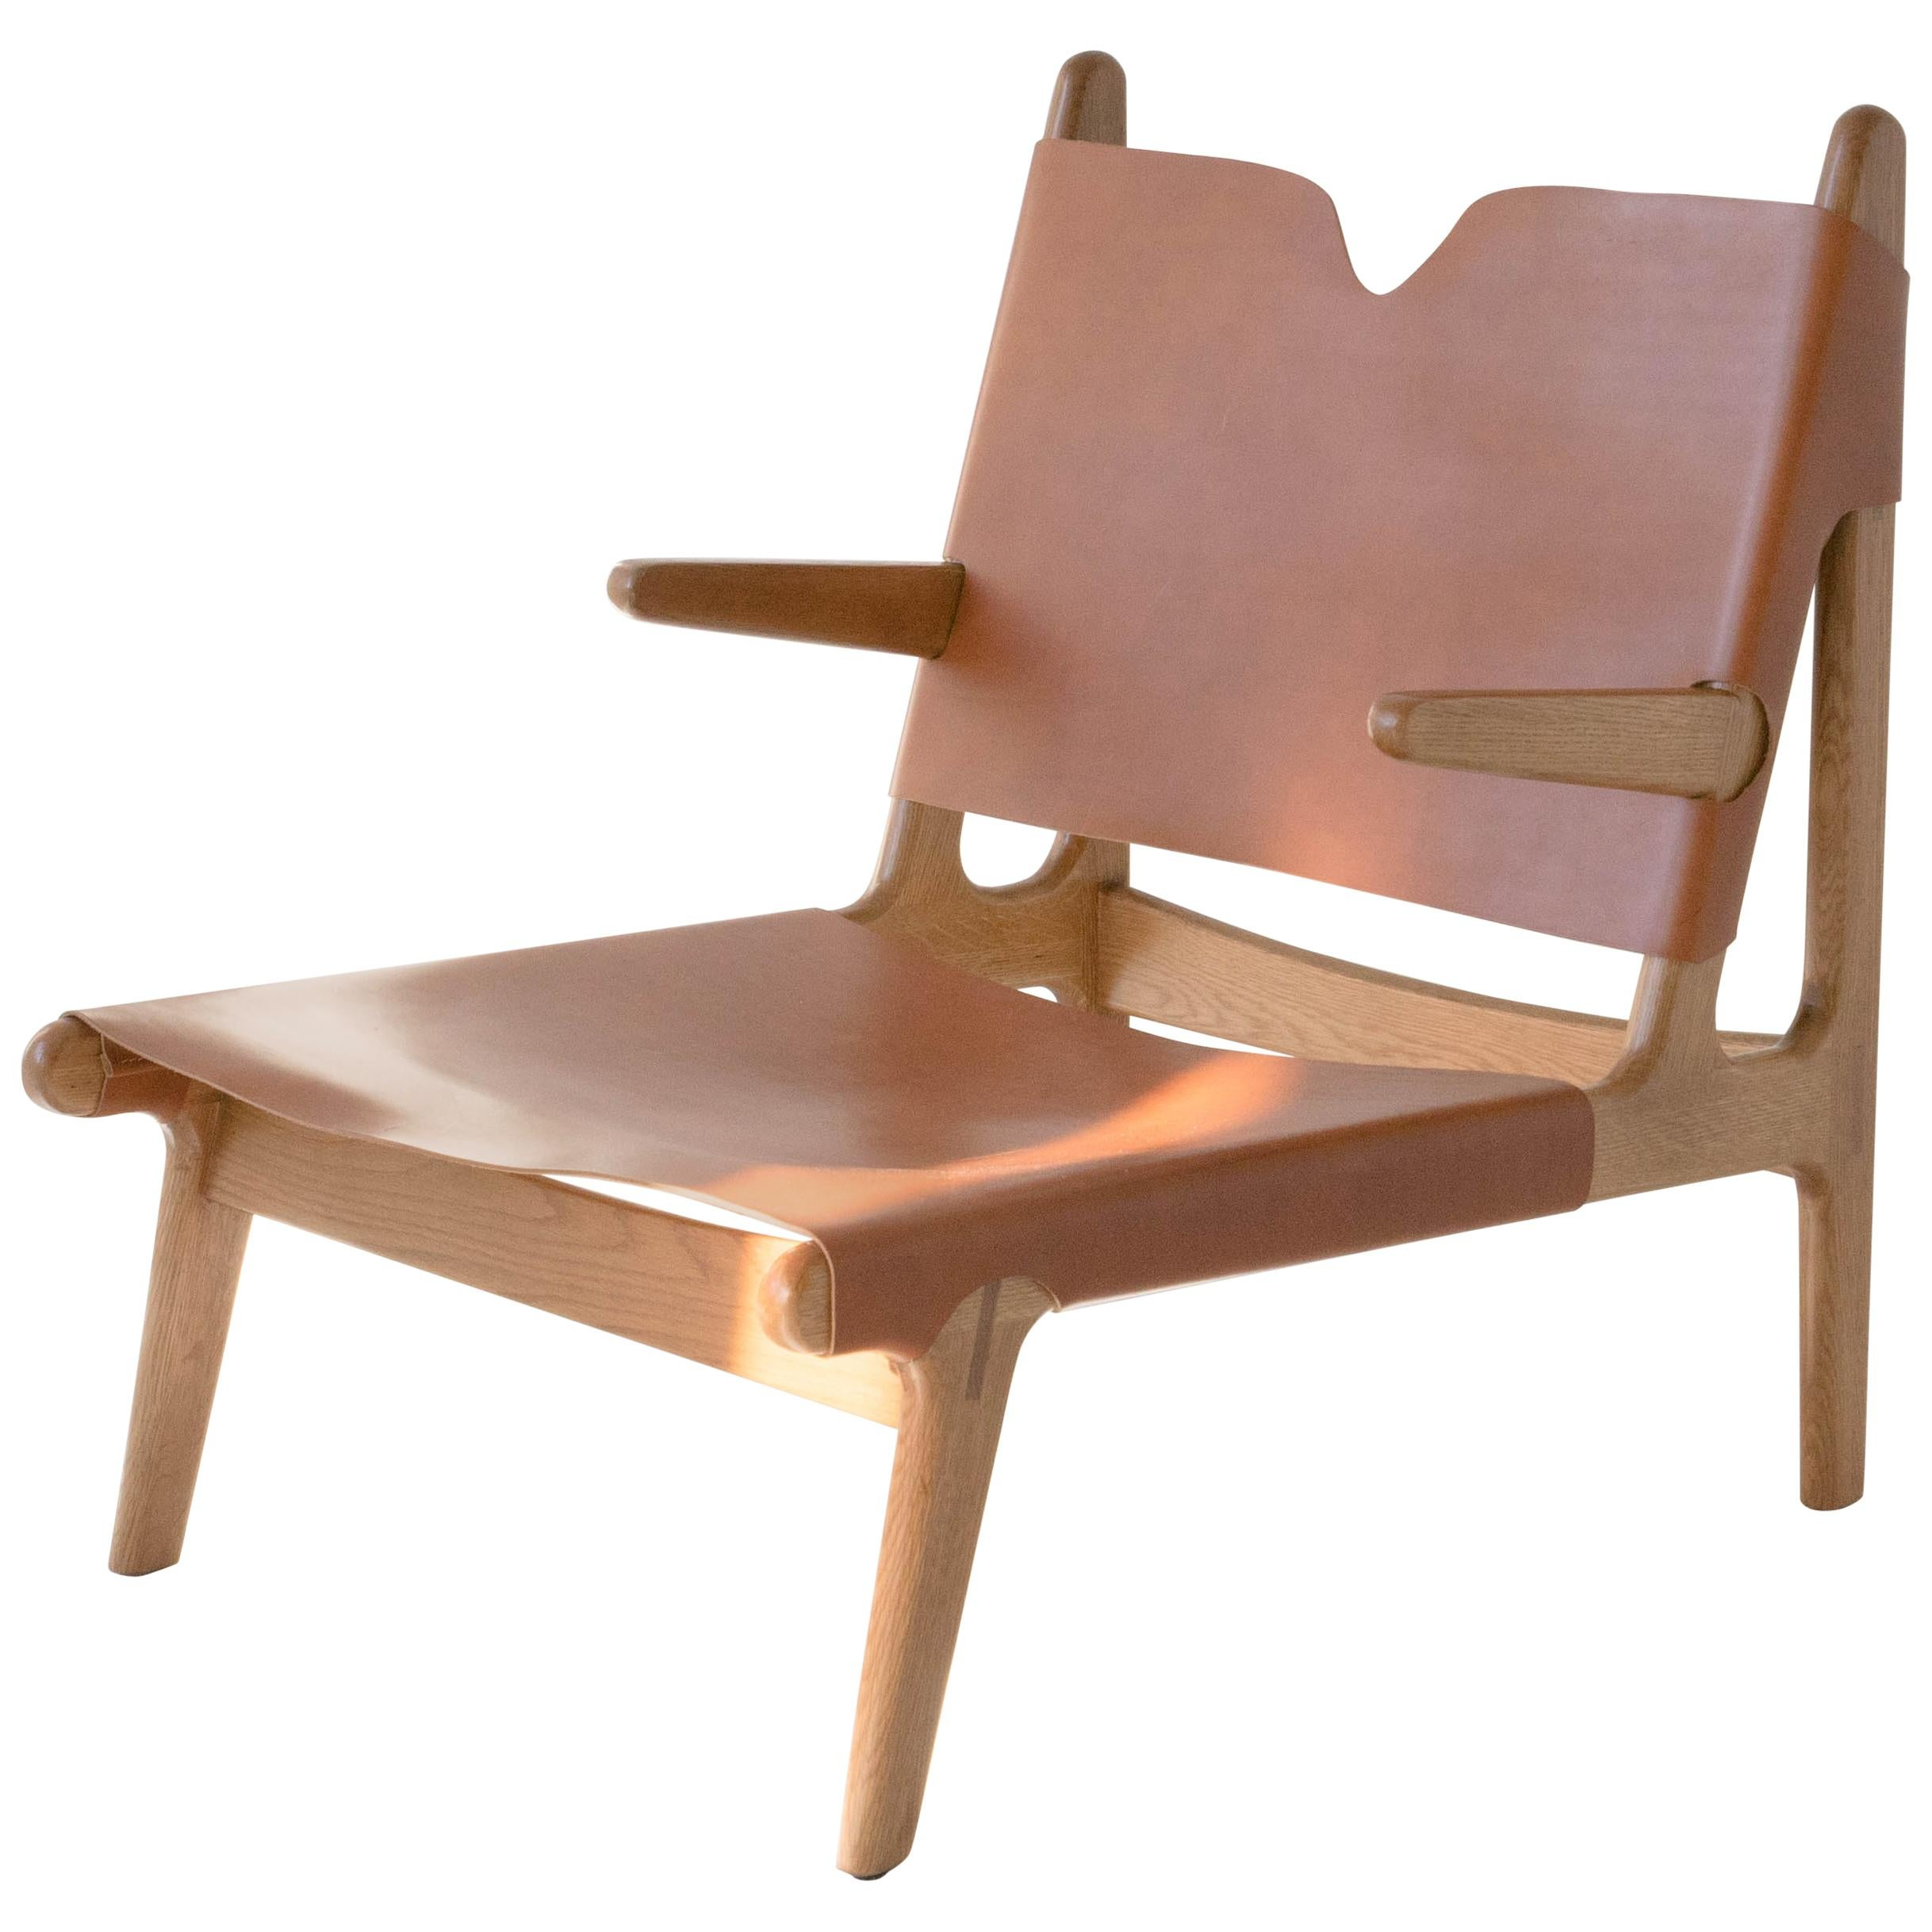 Attrayant Plume Chair By Sun At Six, Sienna Midcentury Lounge Chair In Wood, Leather